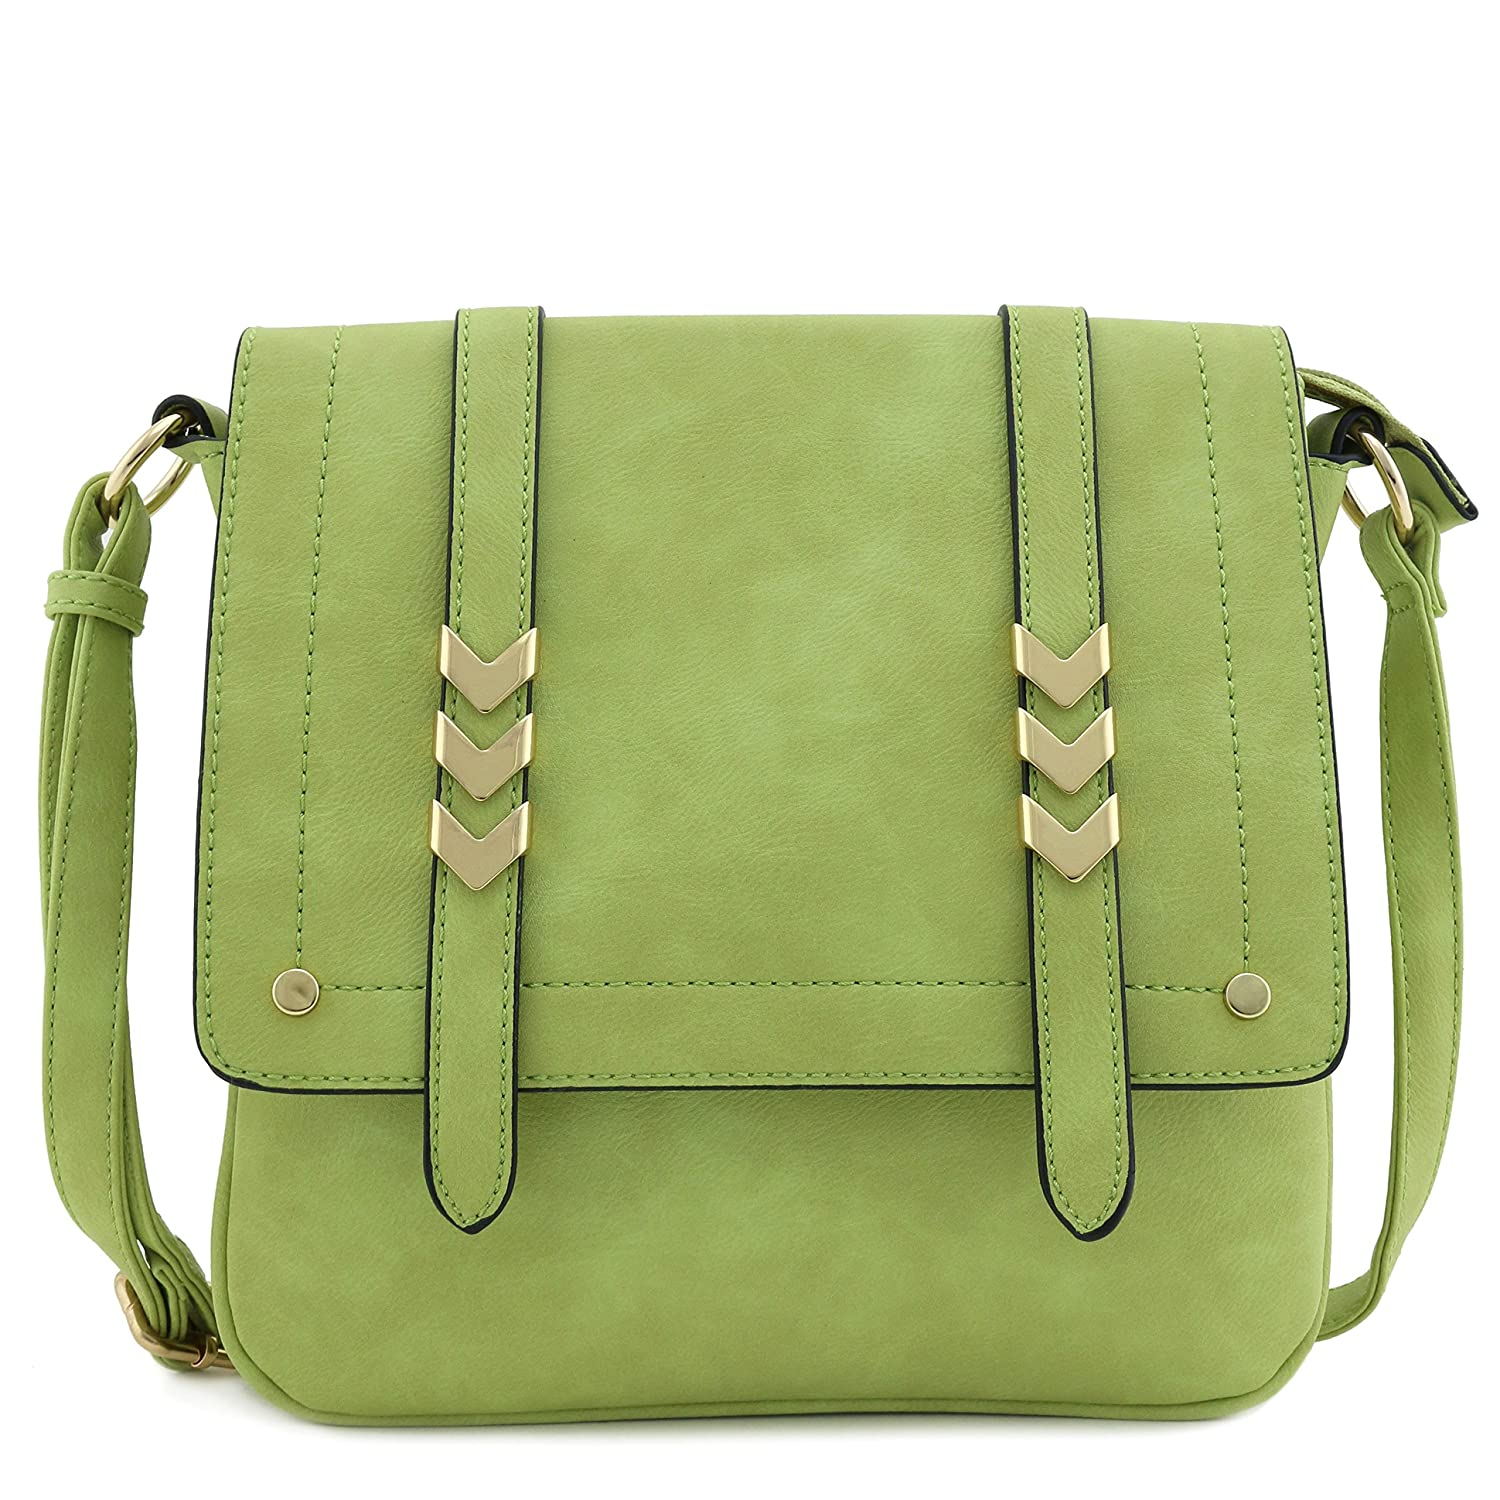 Double Compartment Large Flap Over Crossbody Bag Apple Green  Handbags   Amazon.com c6fff74499399